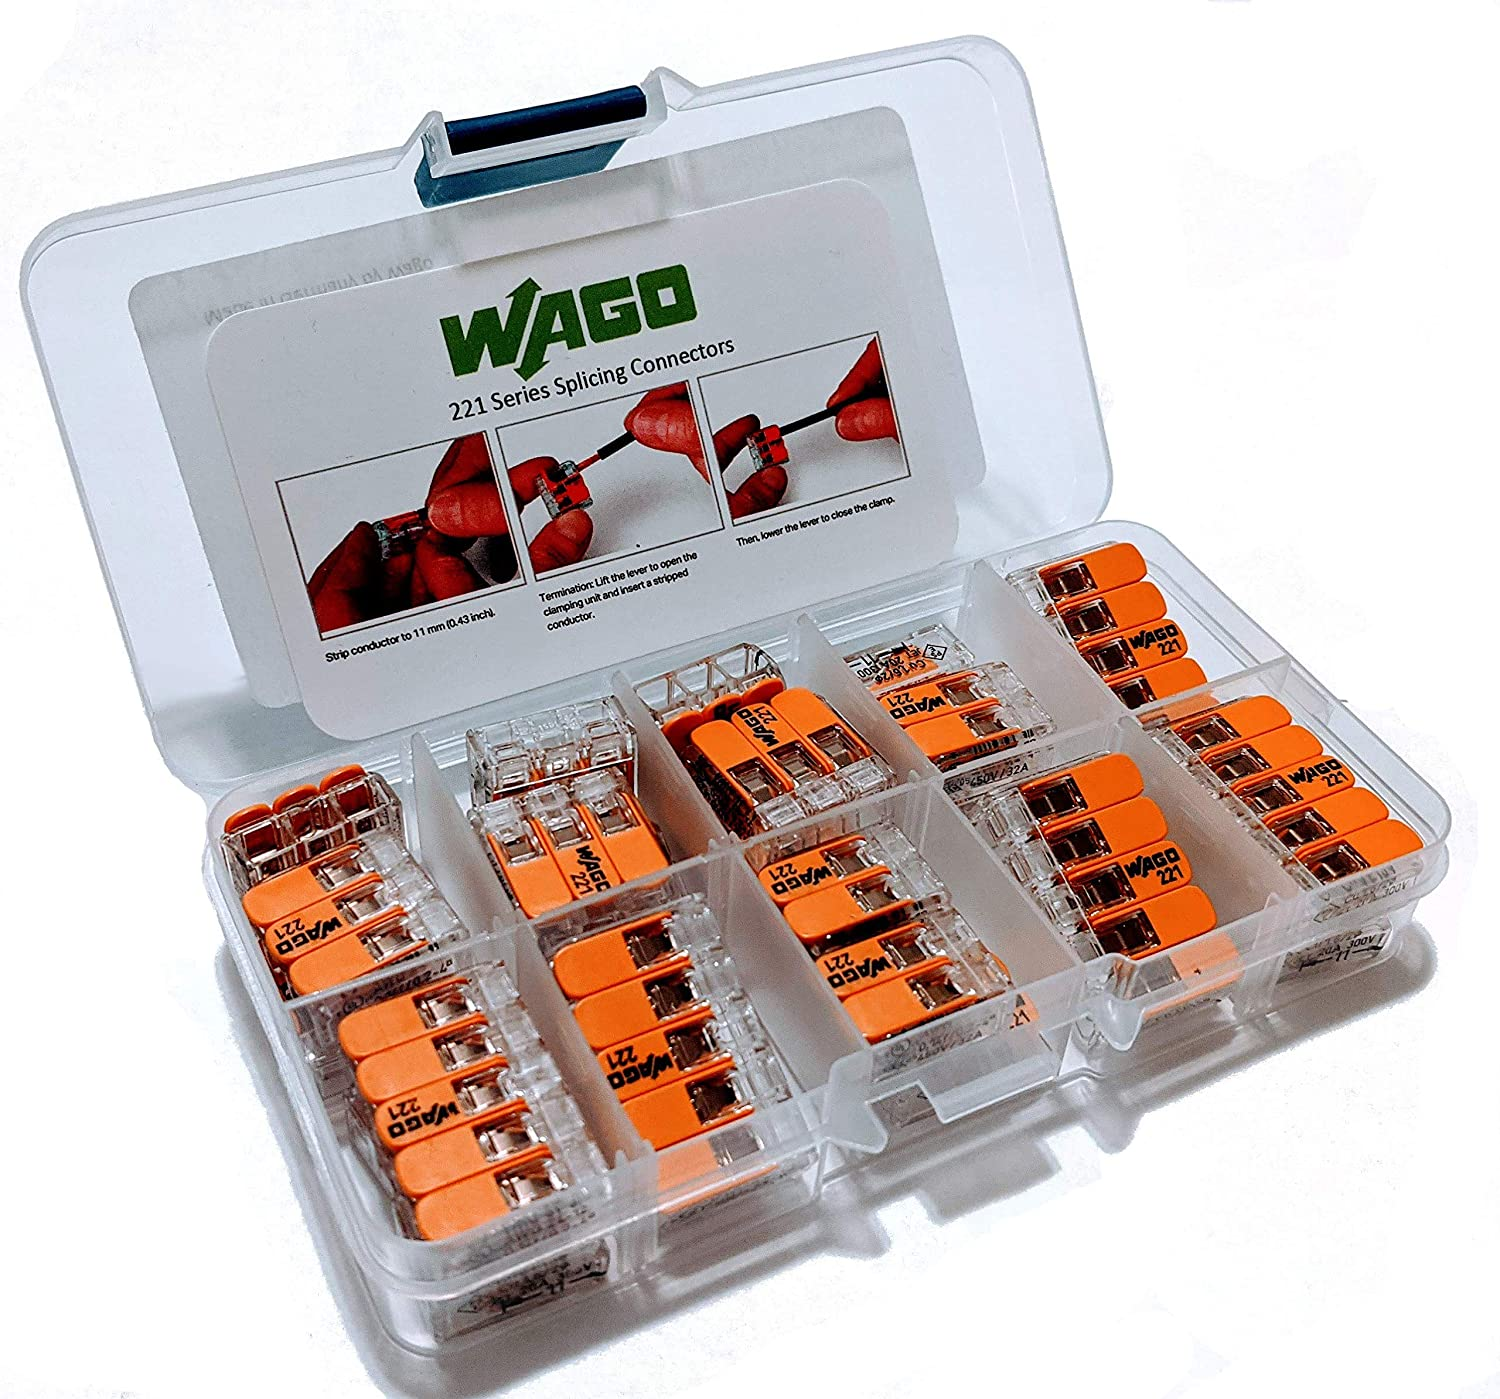 WAGO 221 Series Splicing Connectors with Case 25pc Compact Splicing Wire Connectors. Comes with (10) 221-412, (10) 221-413, (5) 221-415